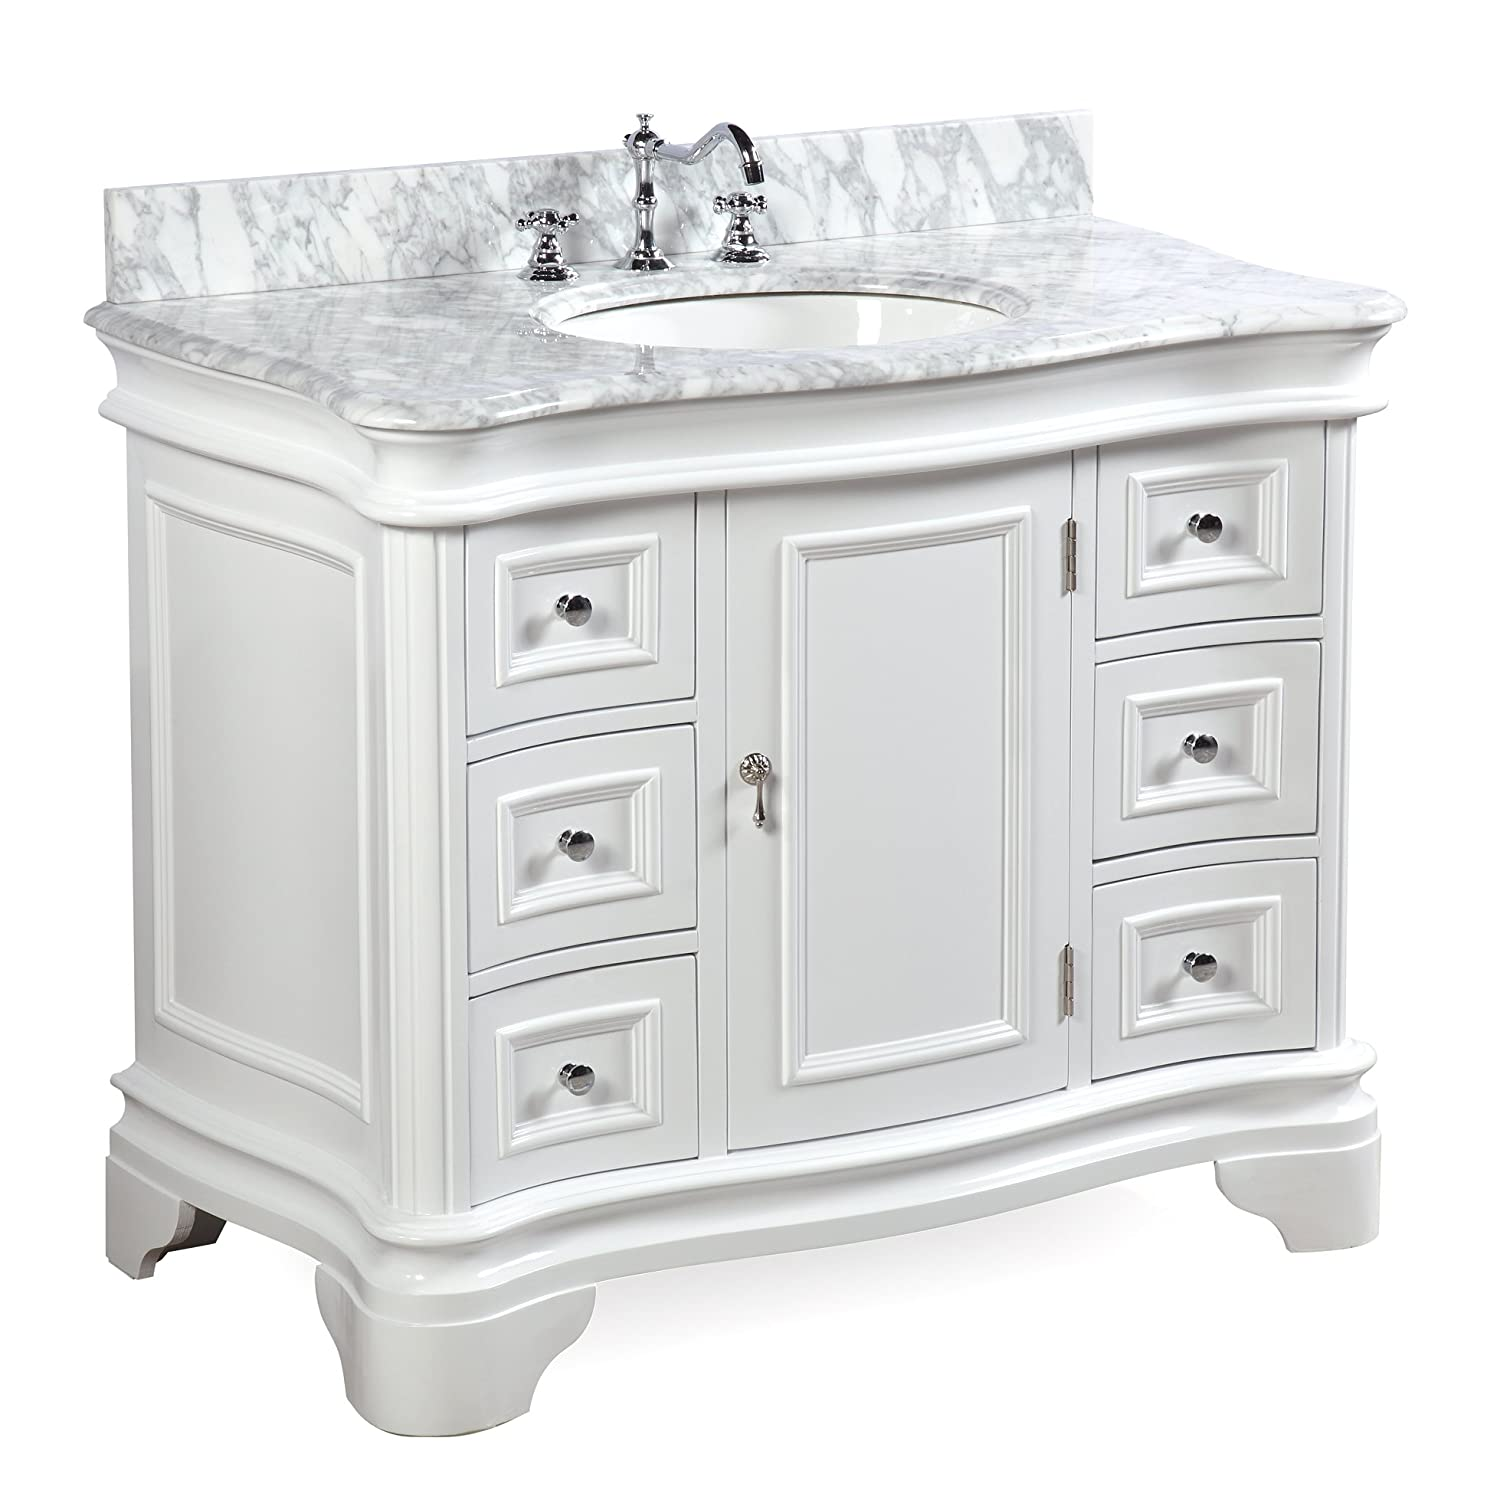 Etonnant Katherine 42 Inch Bathroom Vanity (Carrara/White): Includes White Cabinet  With Authentic Italian Carrara Marble Countertop And White Ceramic Sink ...